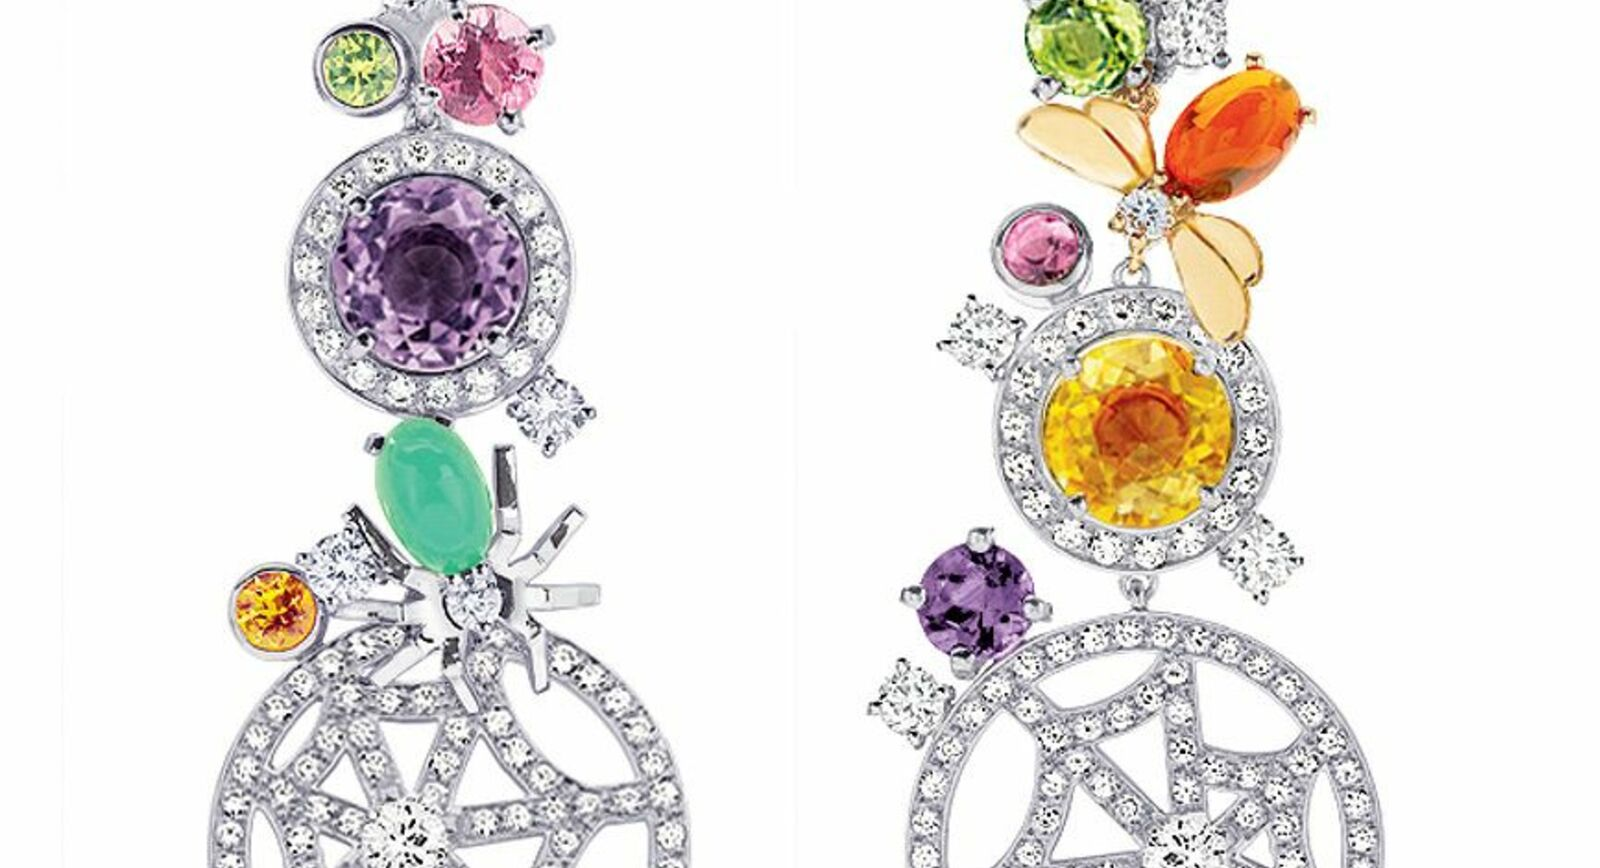 ANATOMY OF A JEWEL: A Game of Seduction by Chaumet